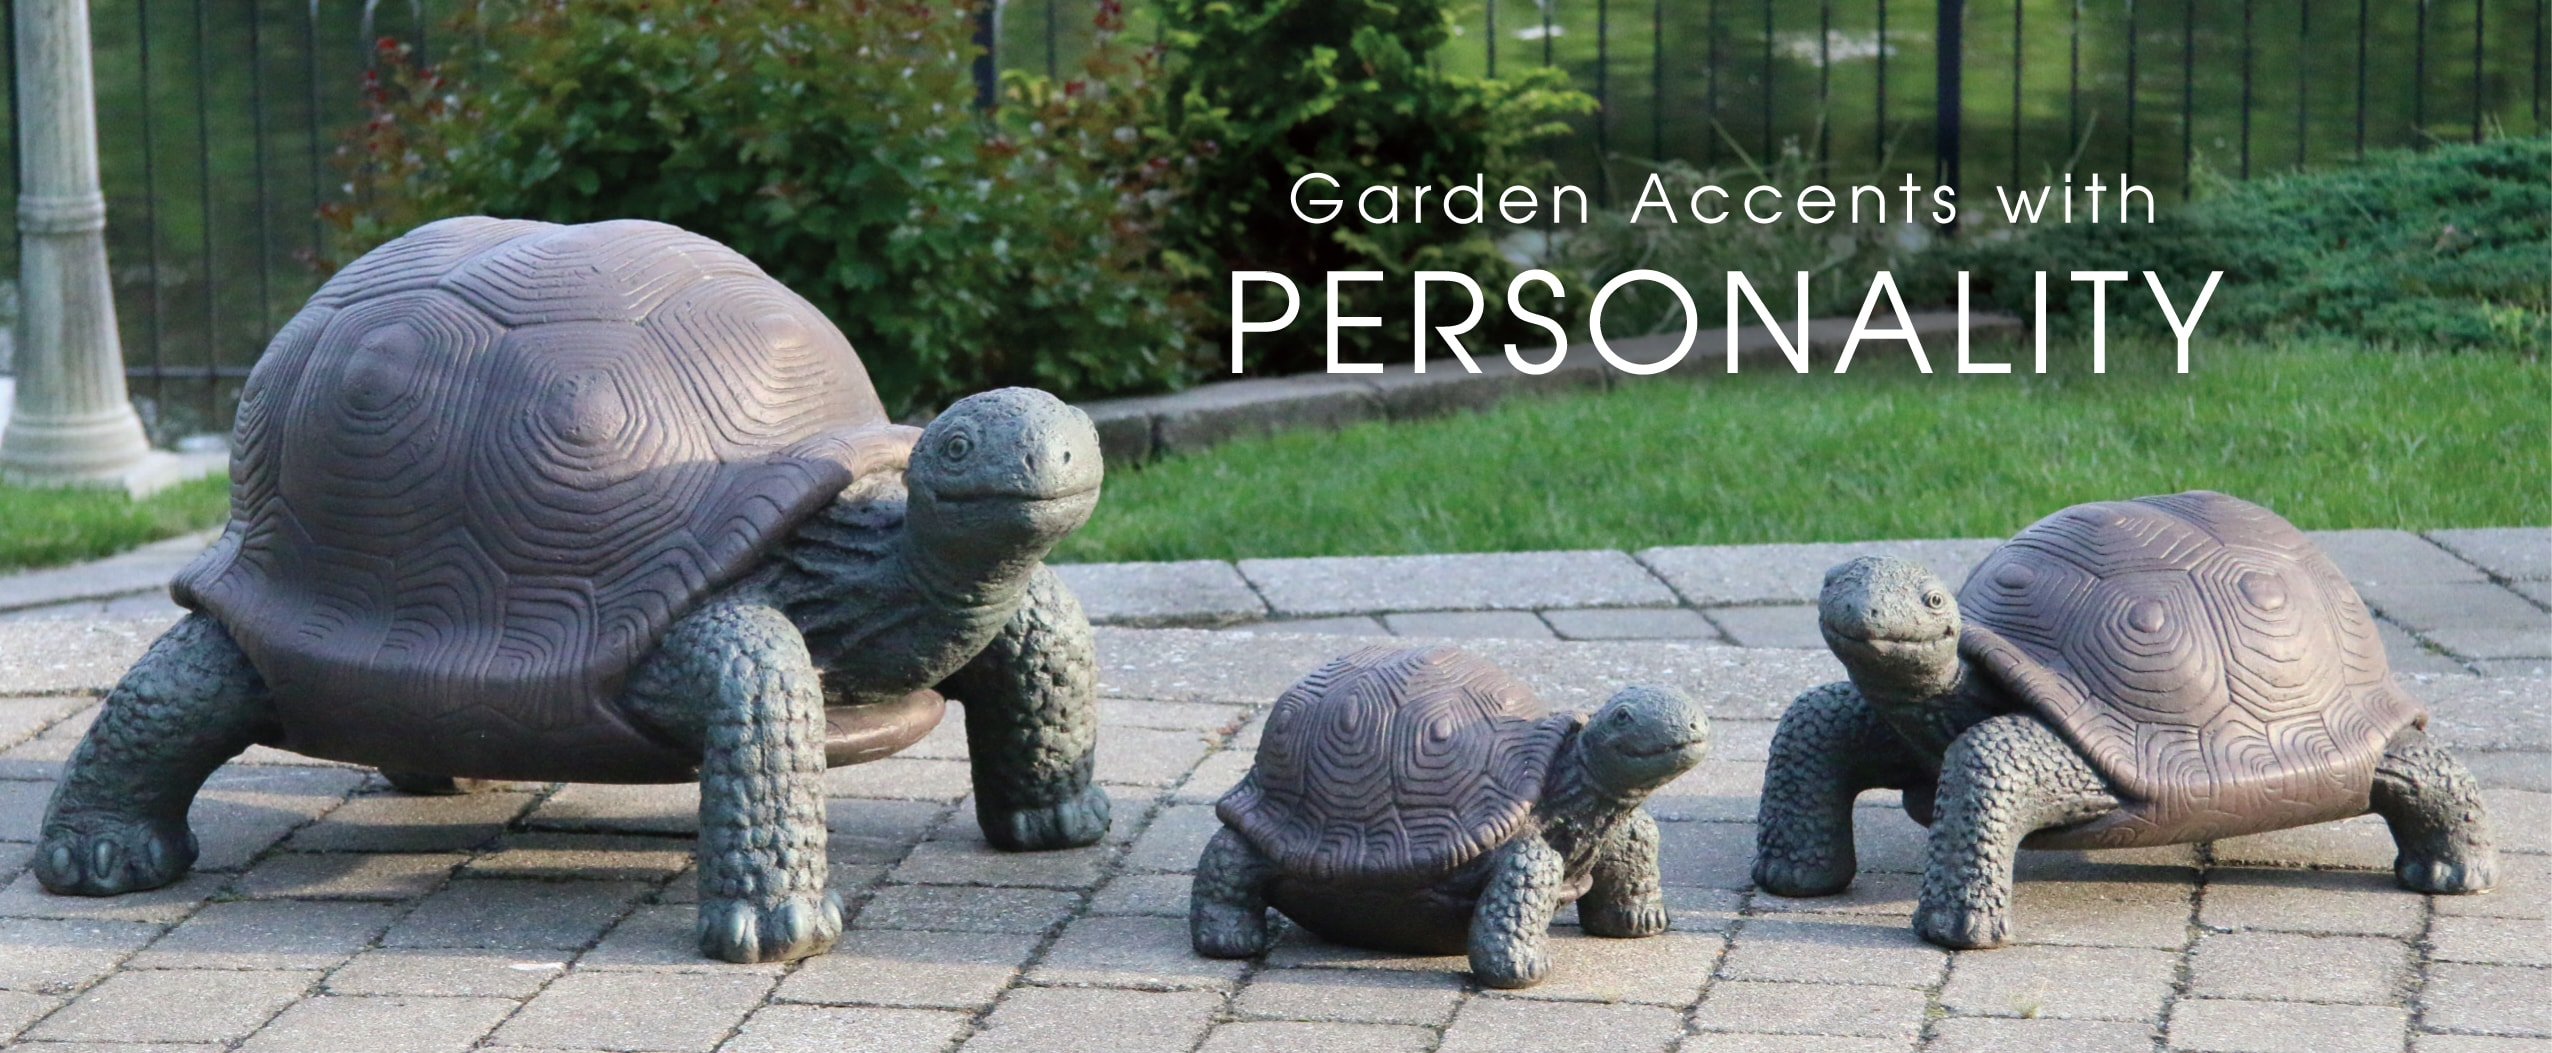 Garden Accents with Personality